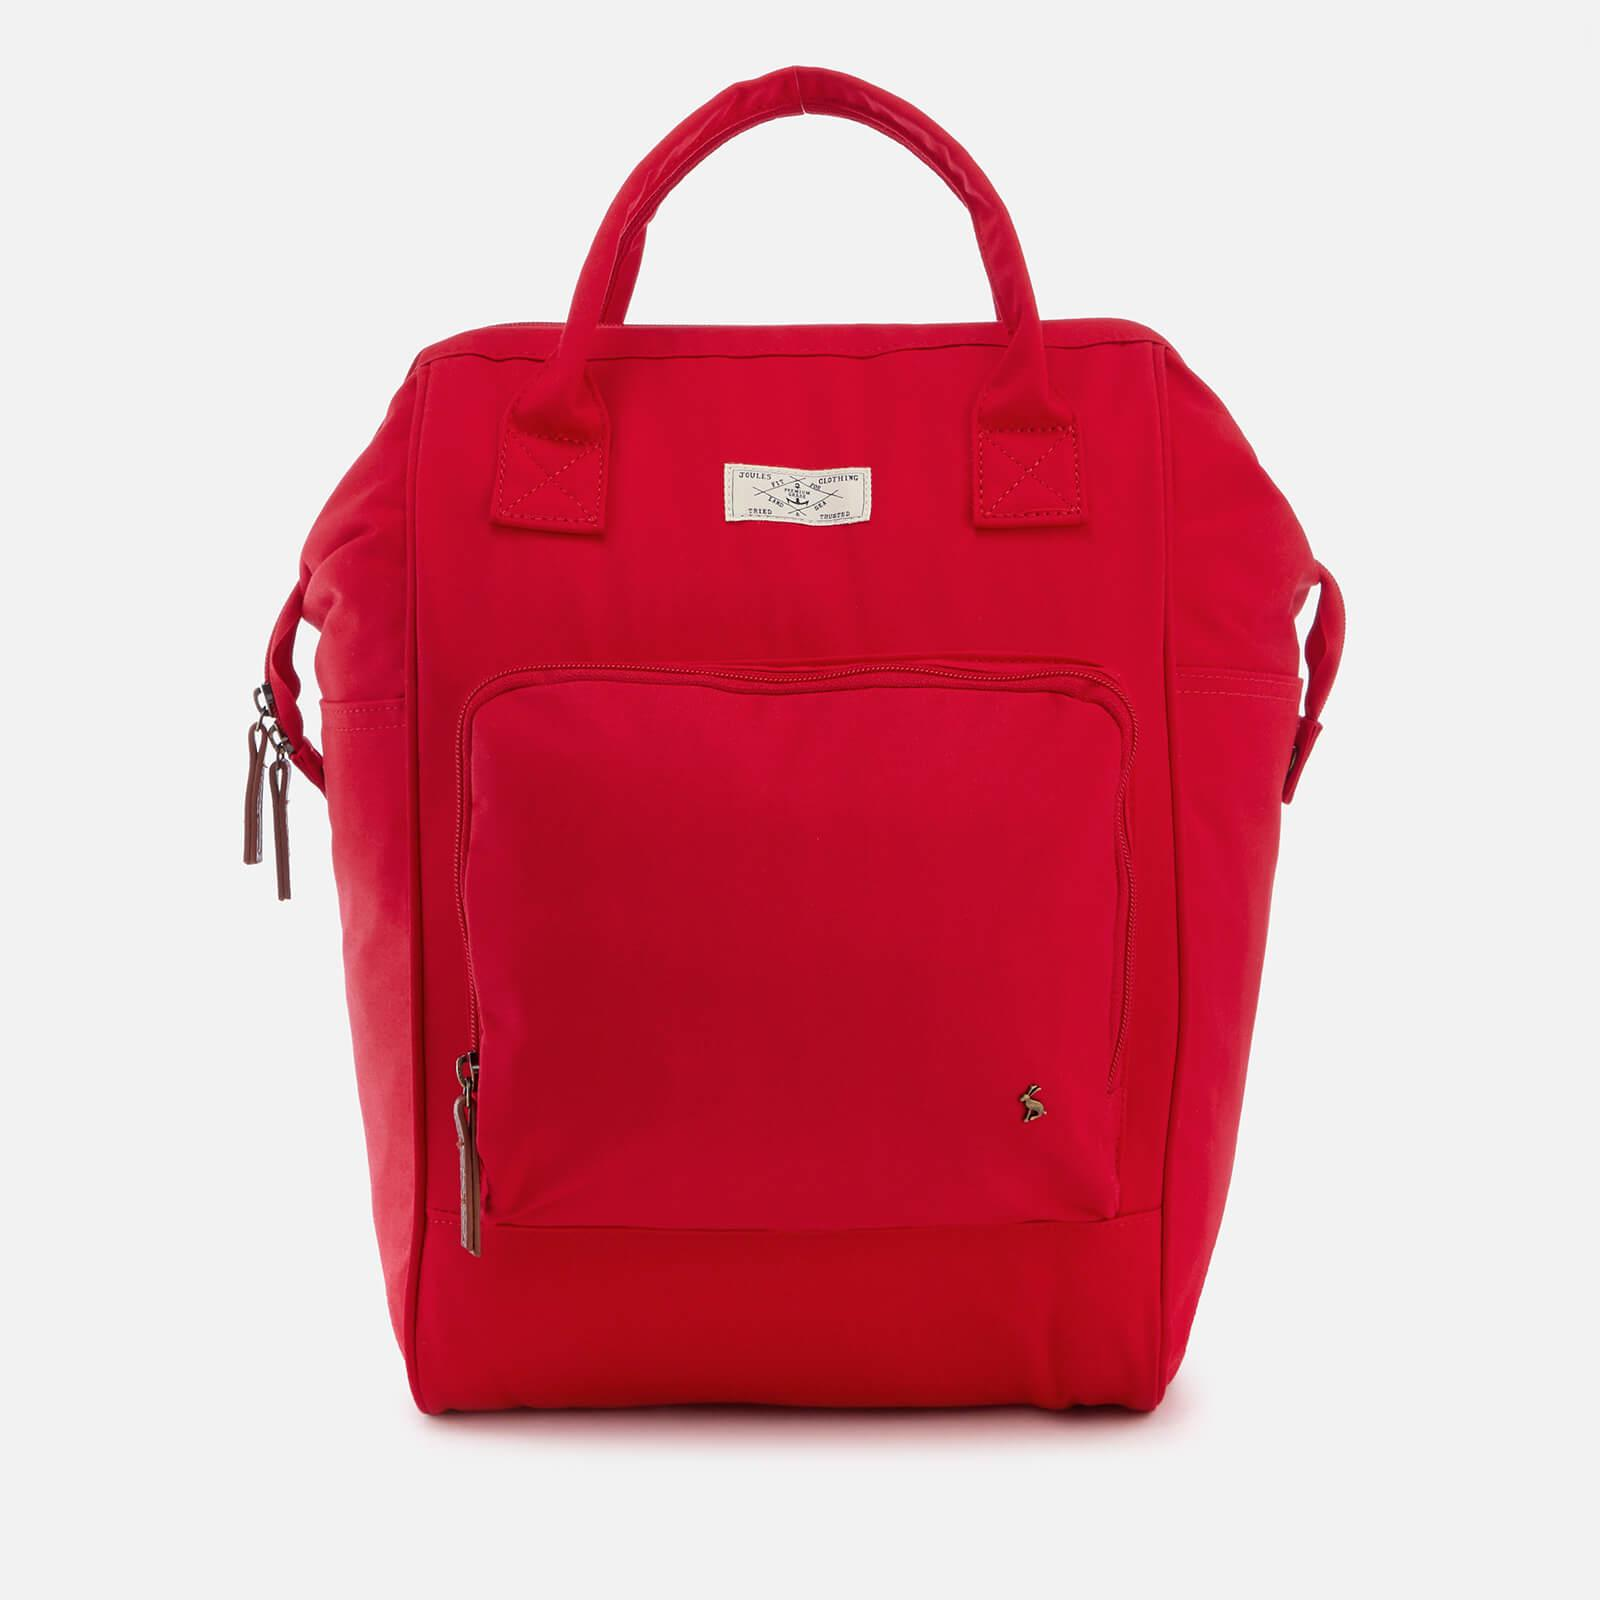 64a177ae0477 Joules Coast Rucksack in Red - Lyst